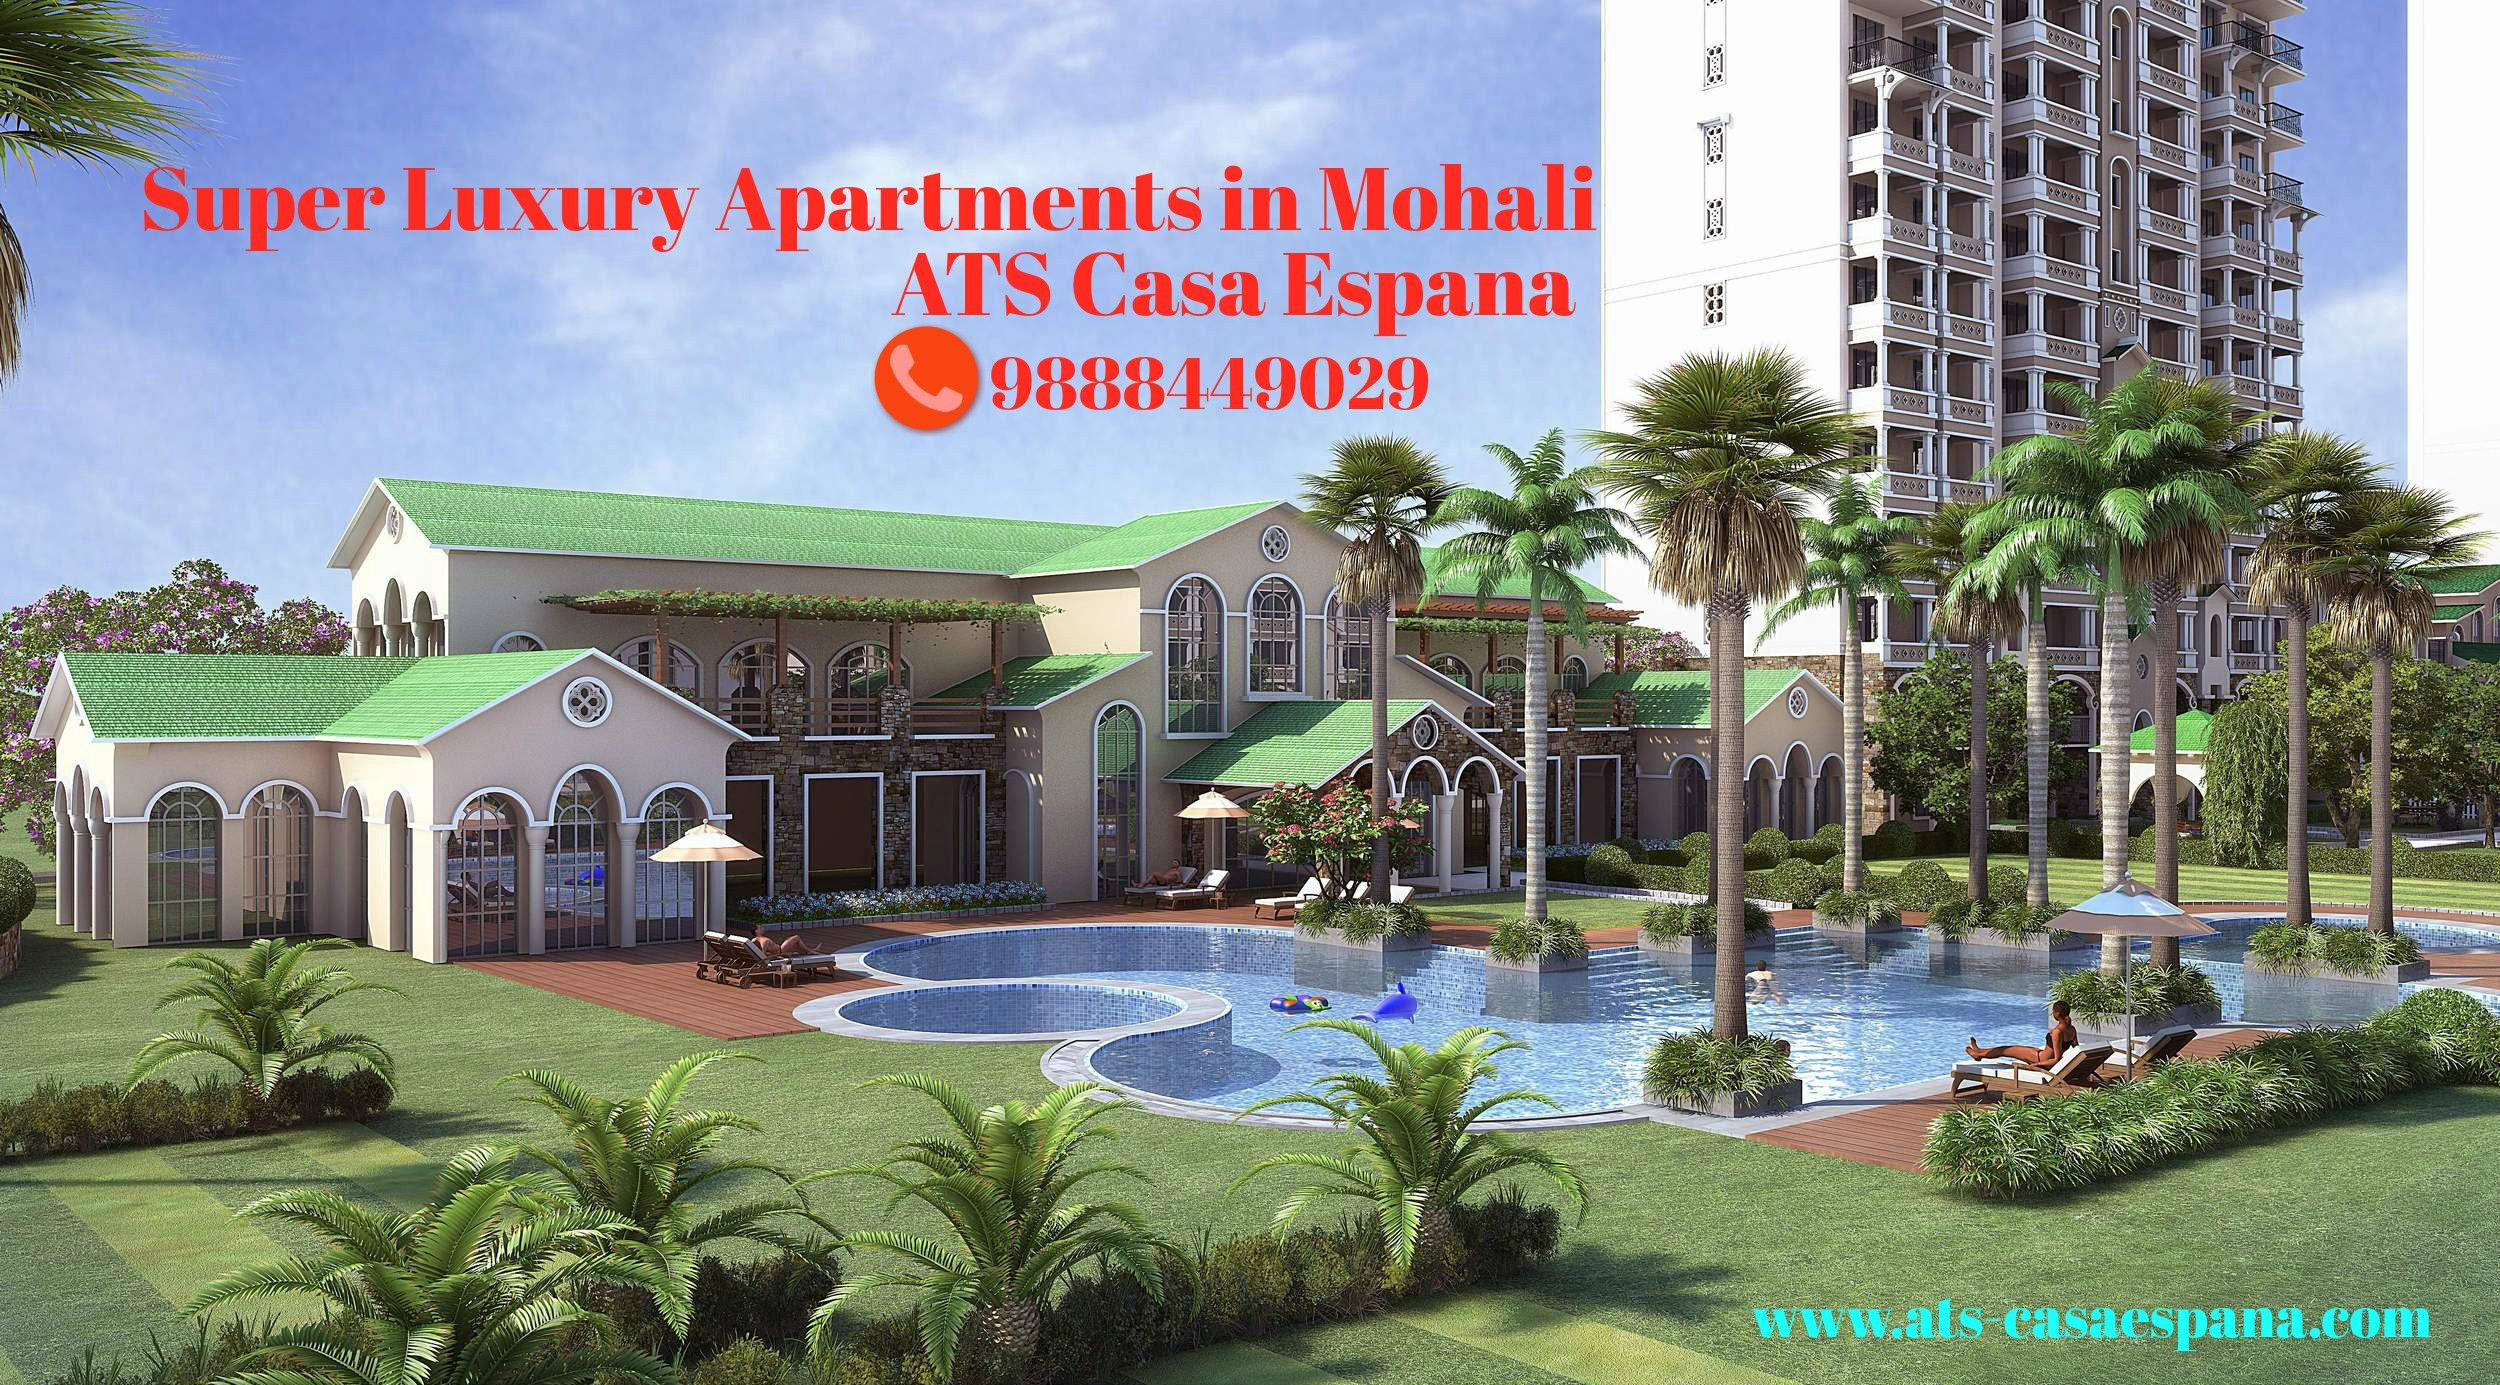 Ats Casa Espana Project Is In 25 Acres With 70 Open Area Buy Residential Luxury Flats Now Call 988844902 Luxury Apartments Luxury Flats Apartments For Sale